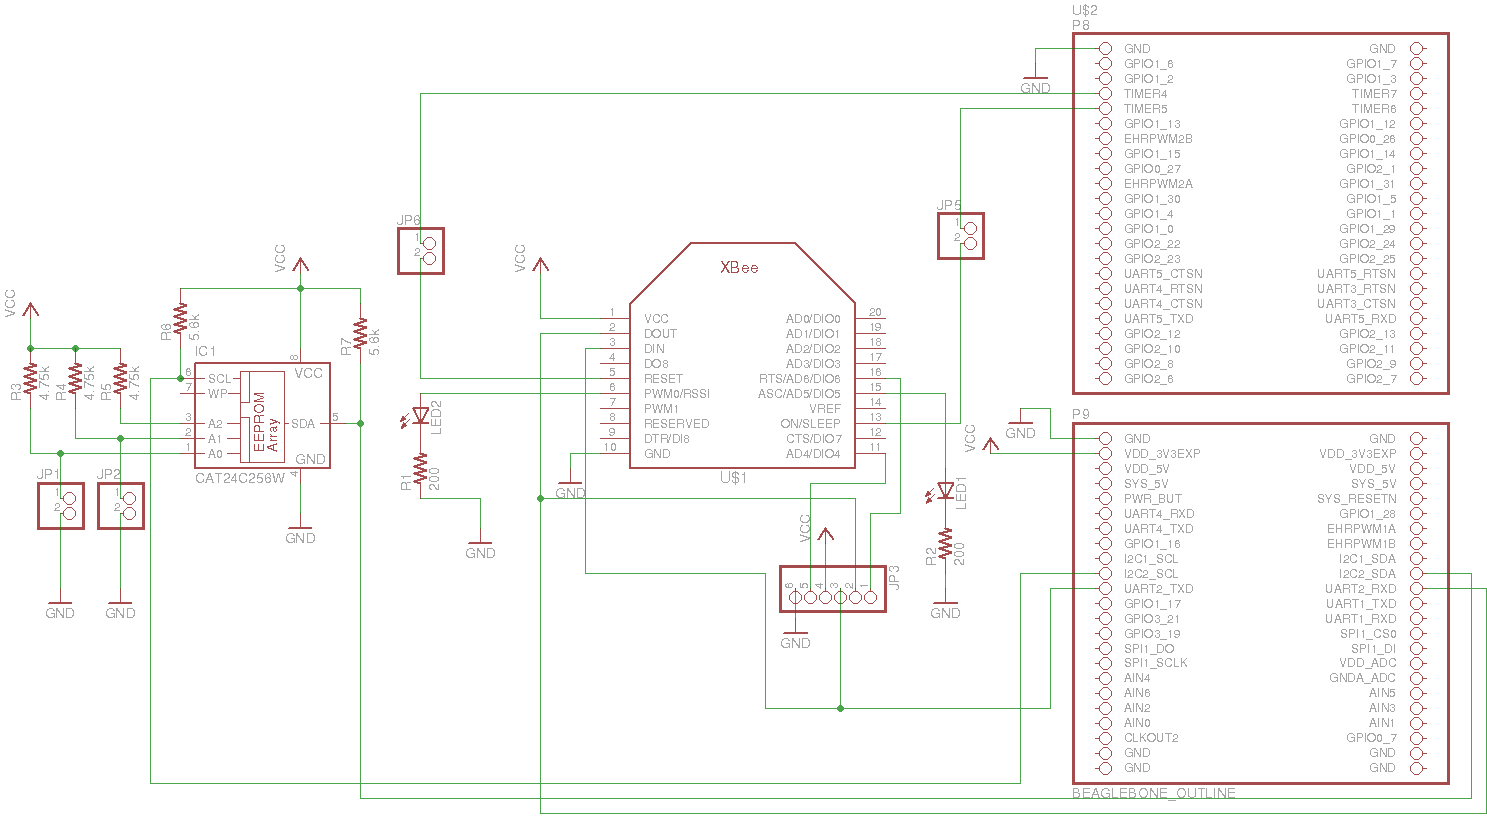 Schematics and board making tips | The World of Infosec According to on gps schematic, lcd schematic, solar schematic, quadcopter schematic, geiger counter schematic, msp430 schematic, usb schematic, arduino schematic, electronics schematic, breadboard schematic, wireless schematic, bluetooth schematic, flux capacitor schematic, apple schematic, xbee schematic,